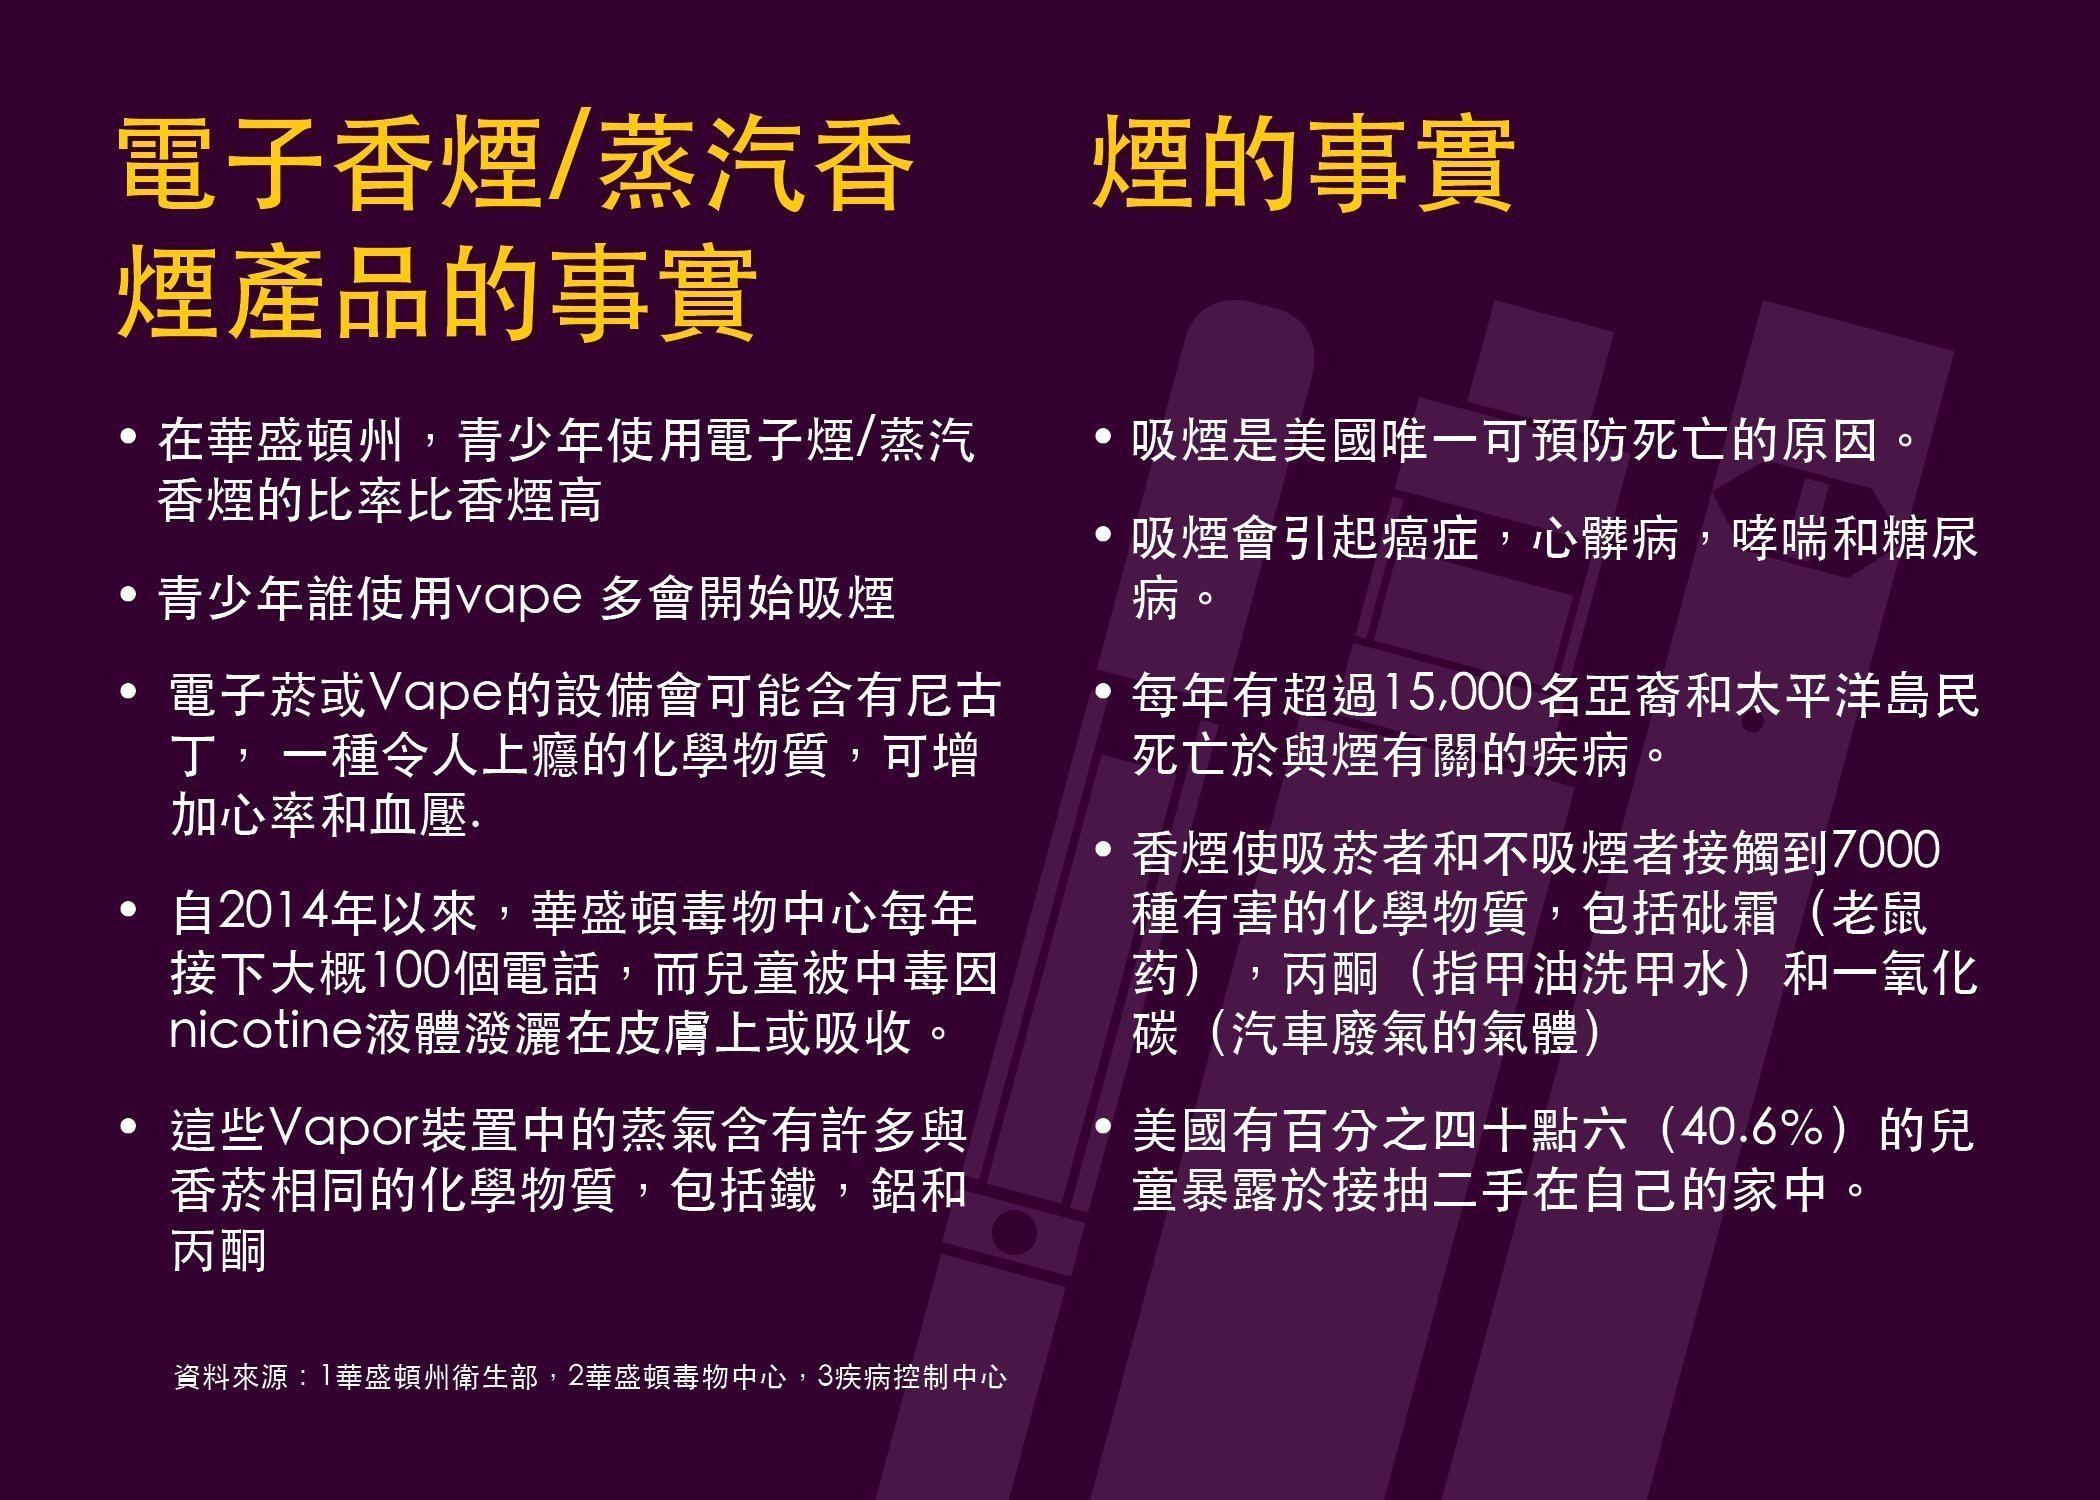 dbf_flyer_back_chinese_t